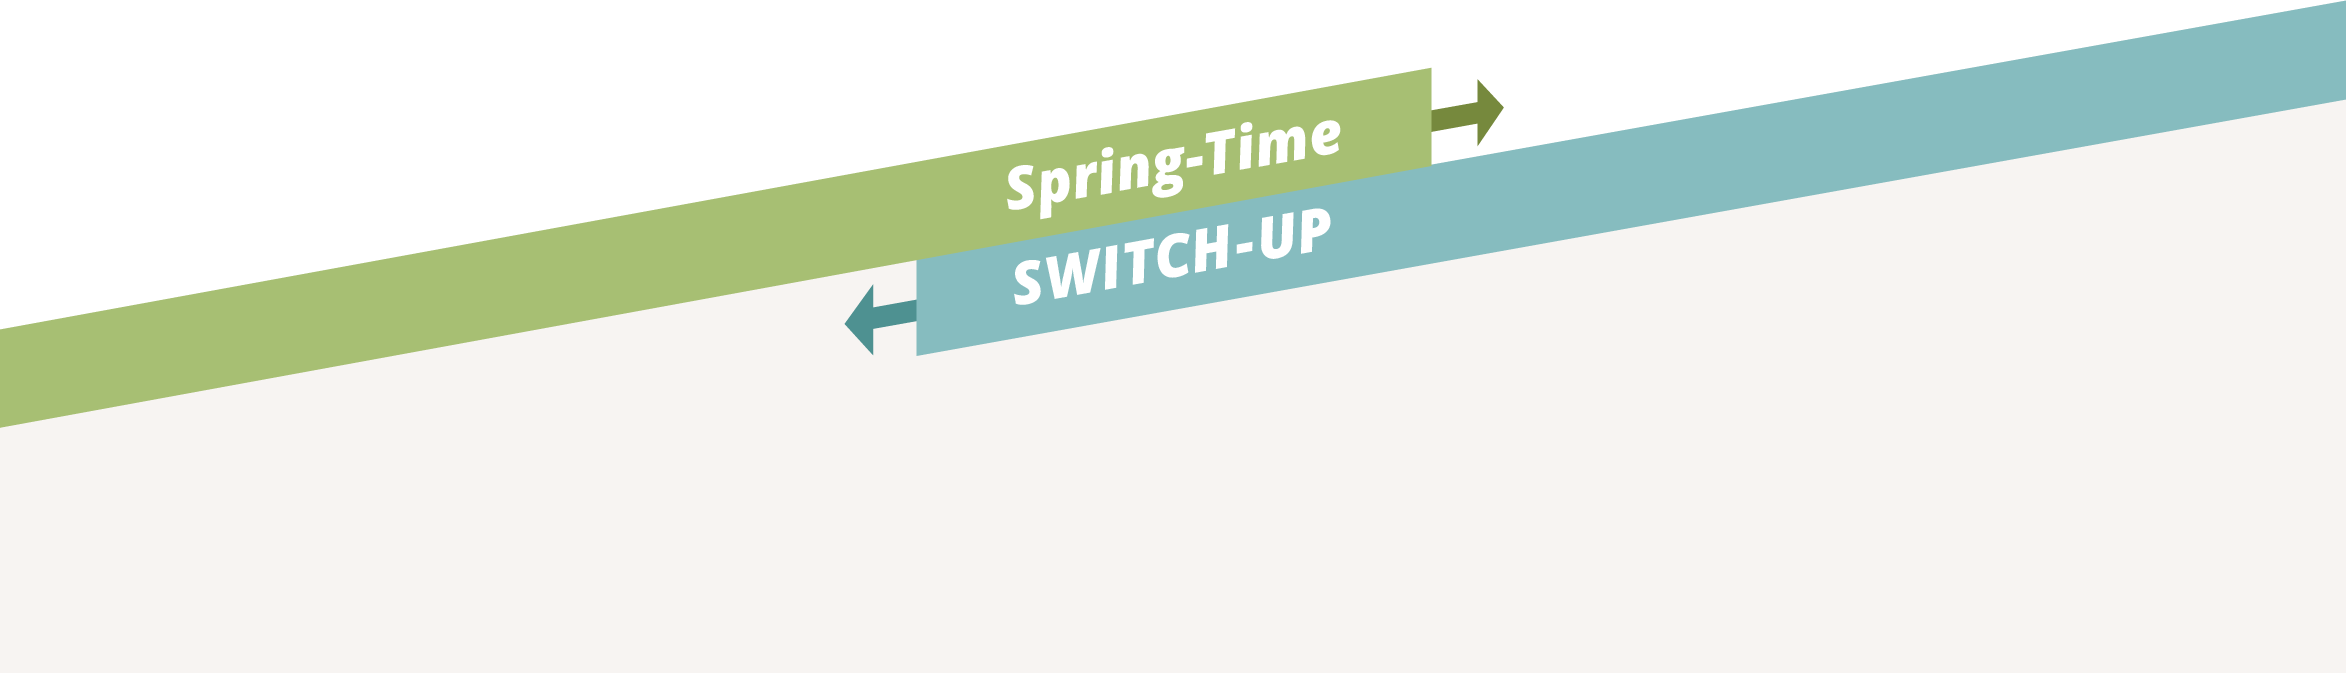 Nonn's Spring-Time Switch-Up